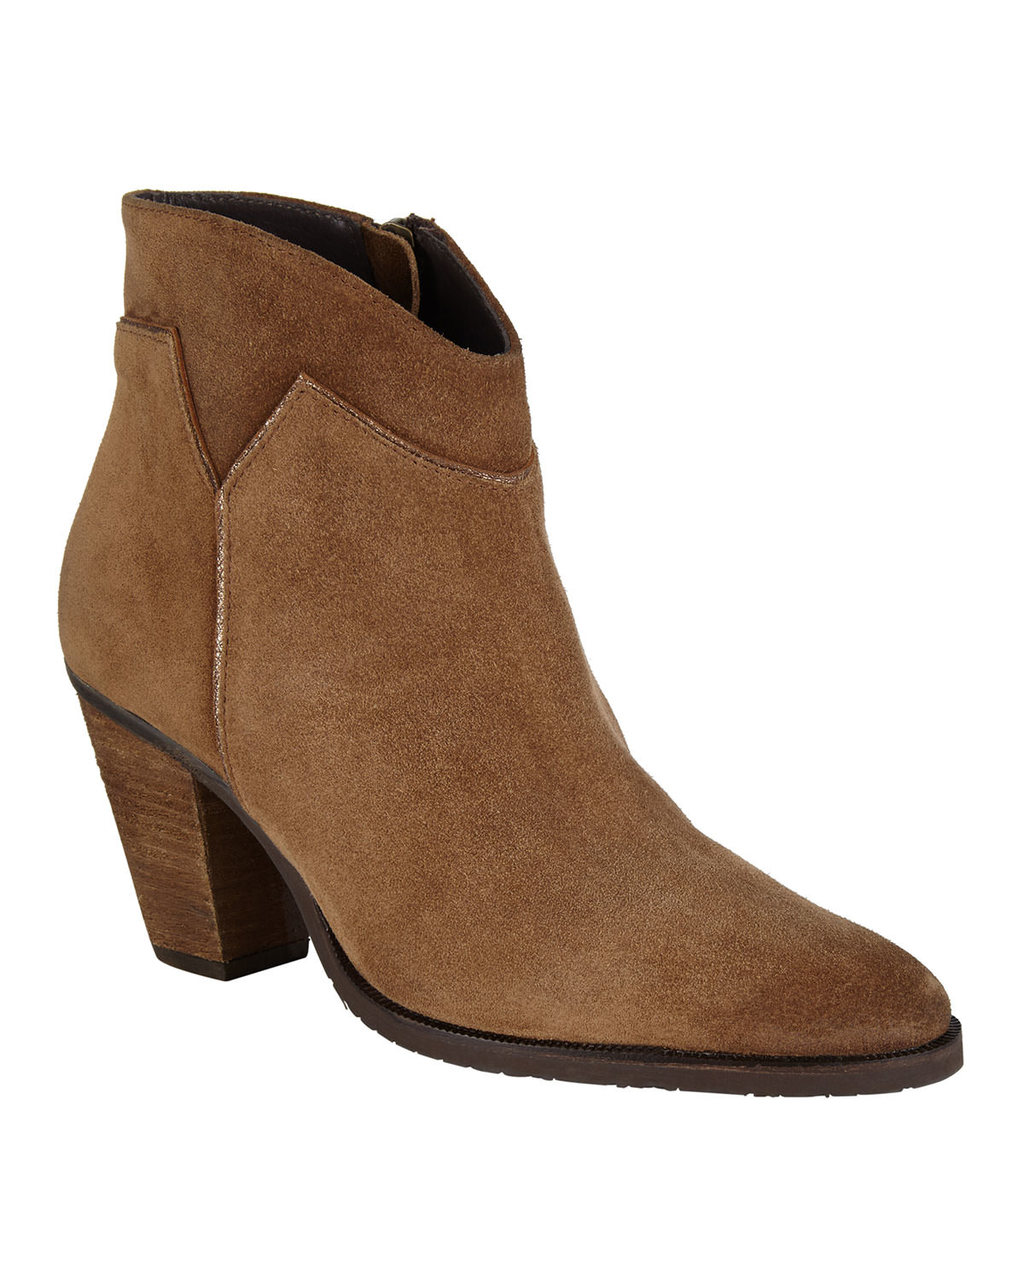 Amber Suede Boot - predominant colour: tan; occasions: casual, creative work; material: suede; heel height: mid; heel: cone; toe: round toe; boot length: ankle boot; style: standard; finish: plain; pattern: plain; season: a/w 2016; wardrobe: highlight